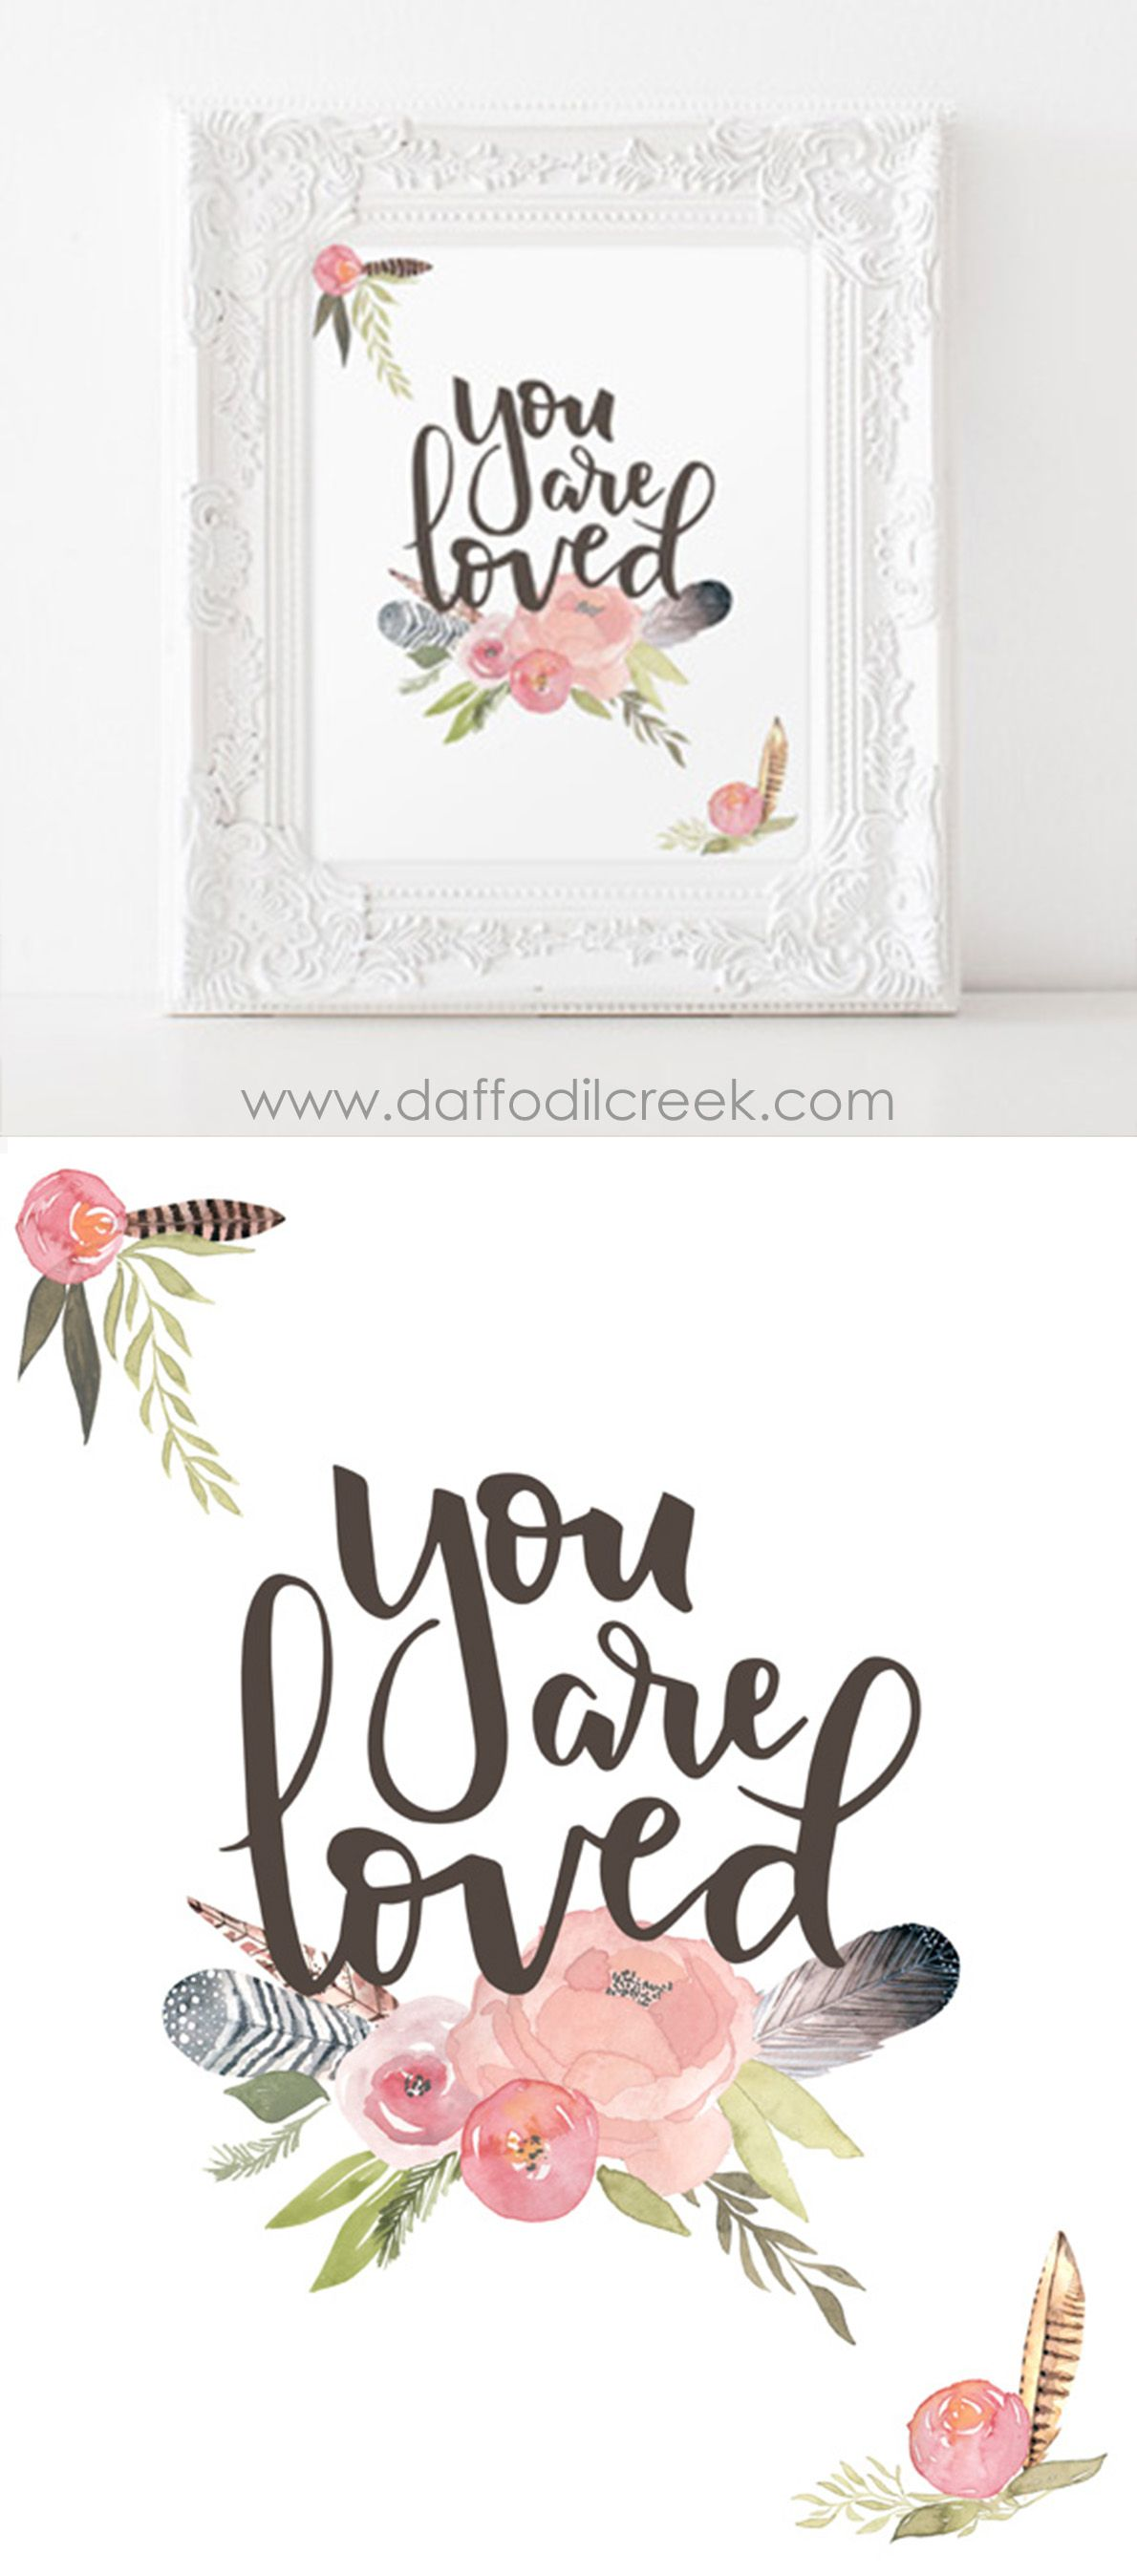 """Spread some love with this sentimental and sweet nursery print! The phrase """"You are loved"""" is hand lettered and paired with watercolor flowers and feathers. So sweet for a girls room or nursery!"""